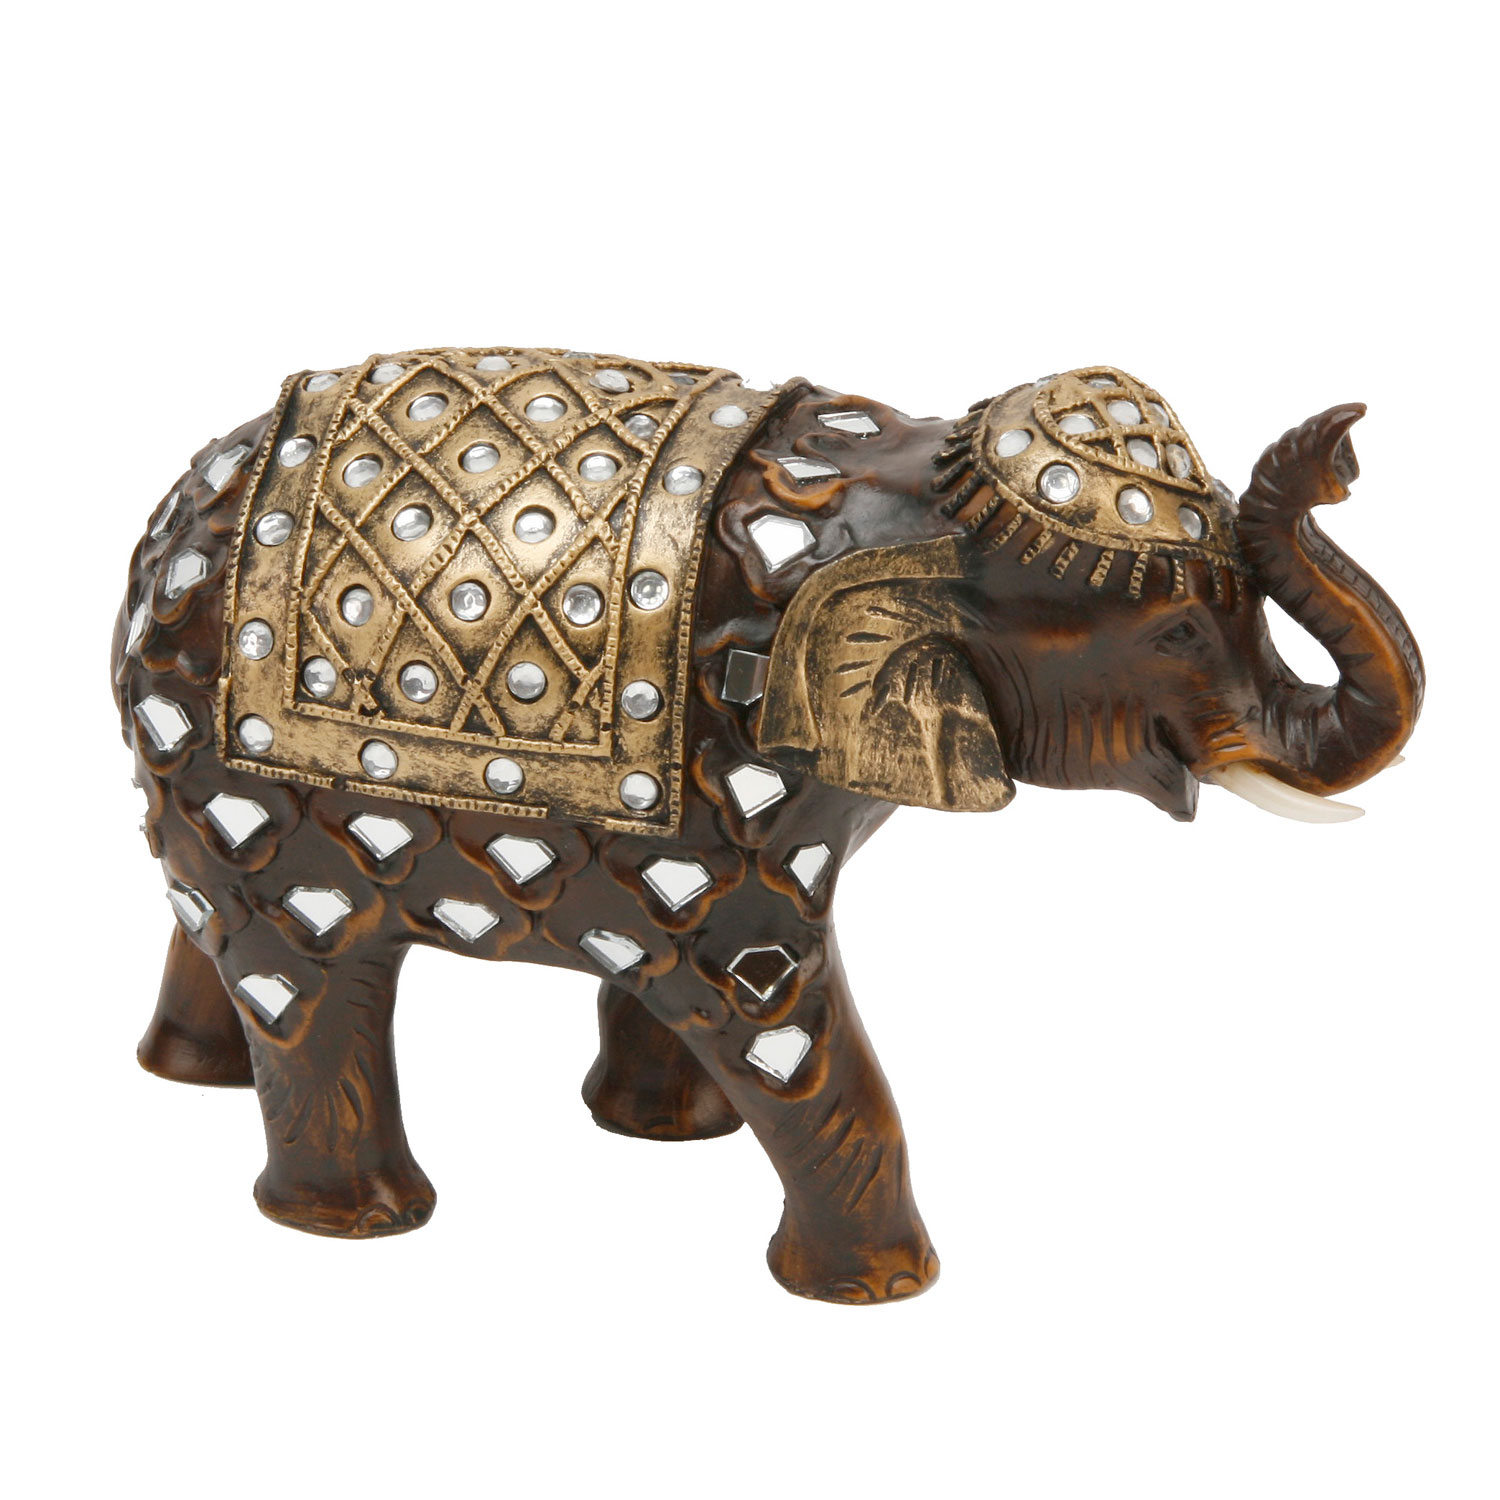 Wood Effect Mirror Glass Elephant Trunk Up Gift Ornament